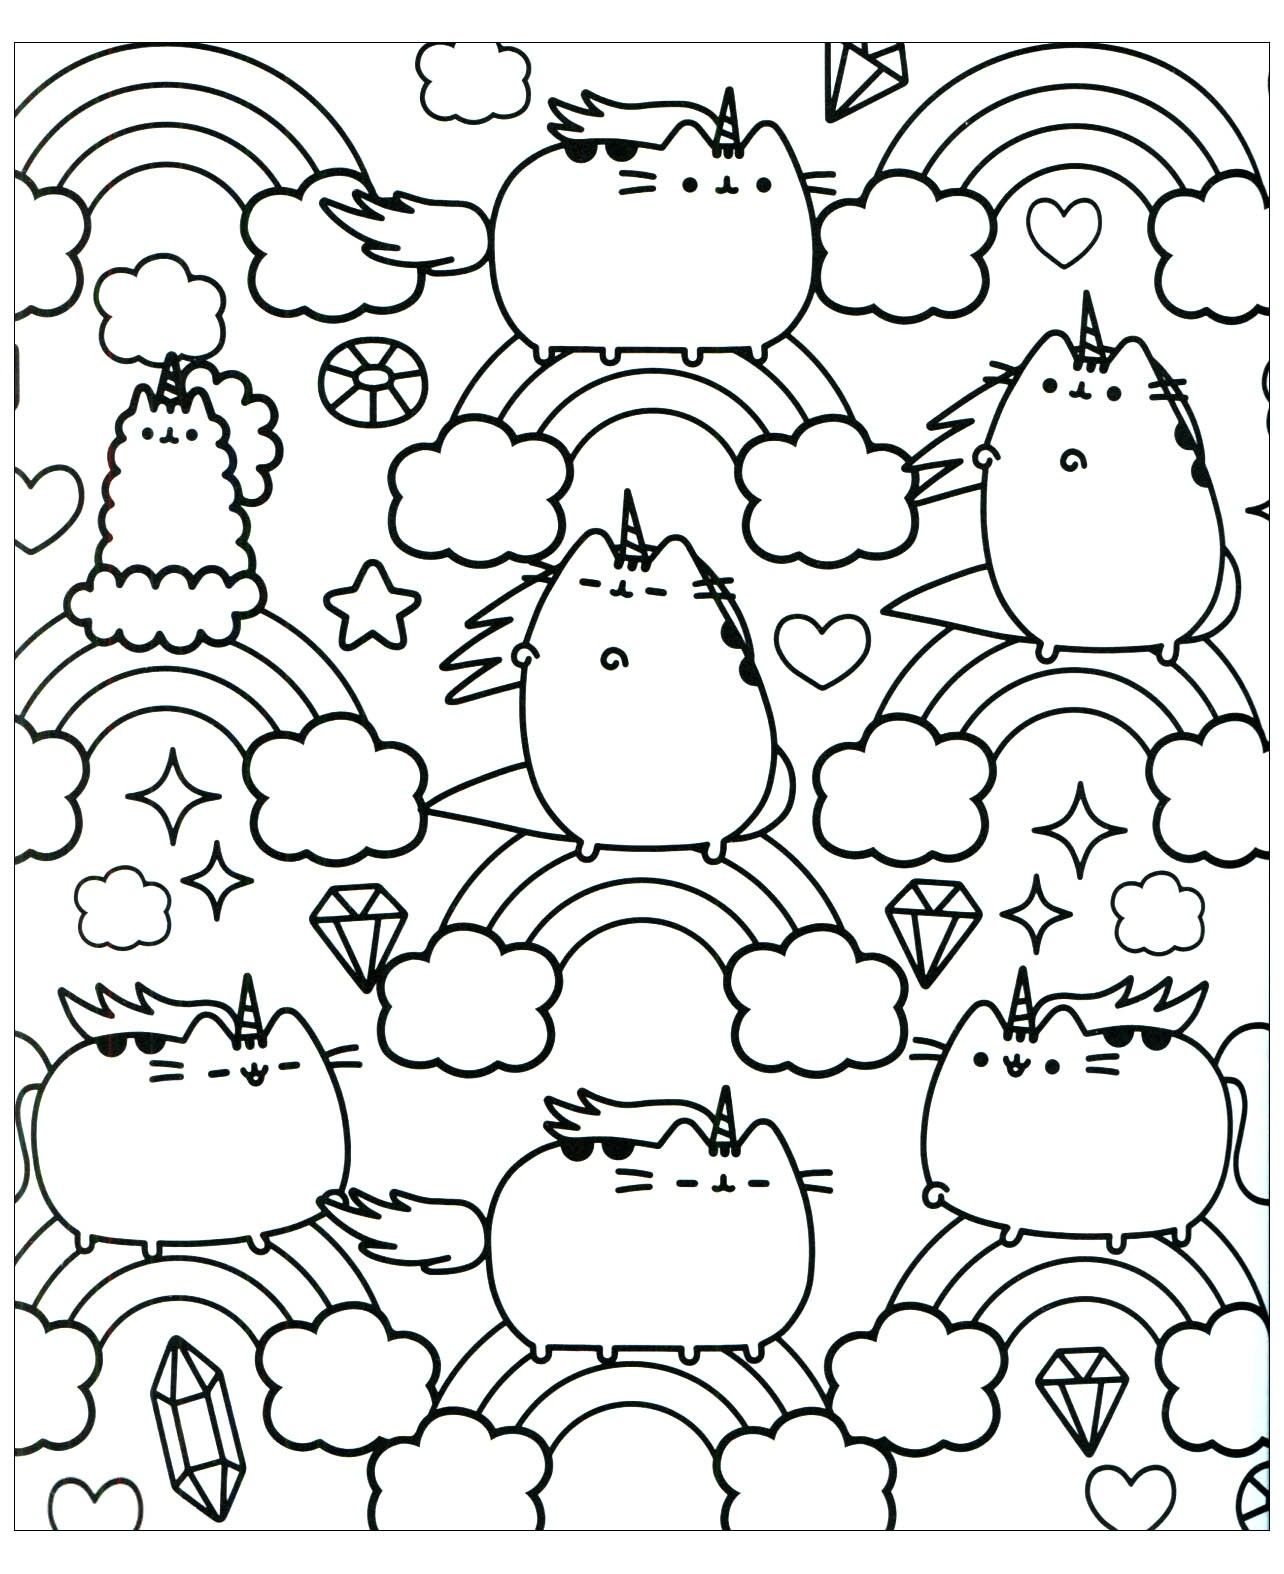 36+ Pusheen coloring pages to print information